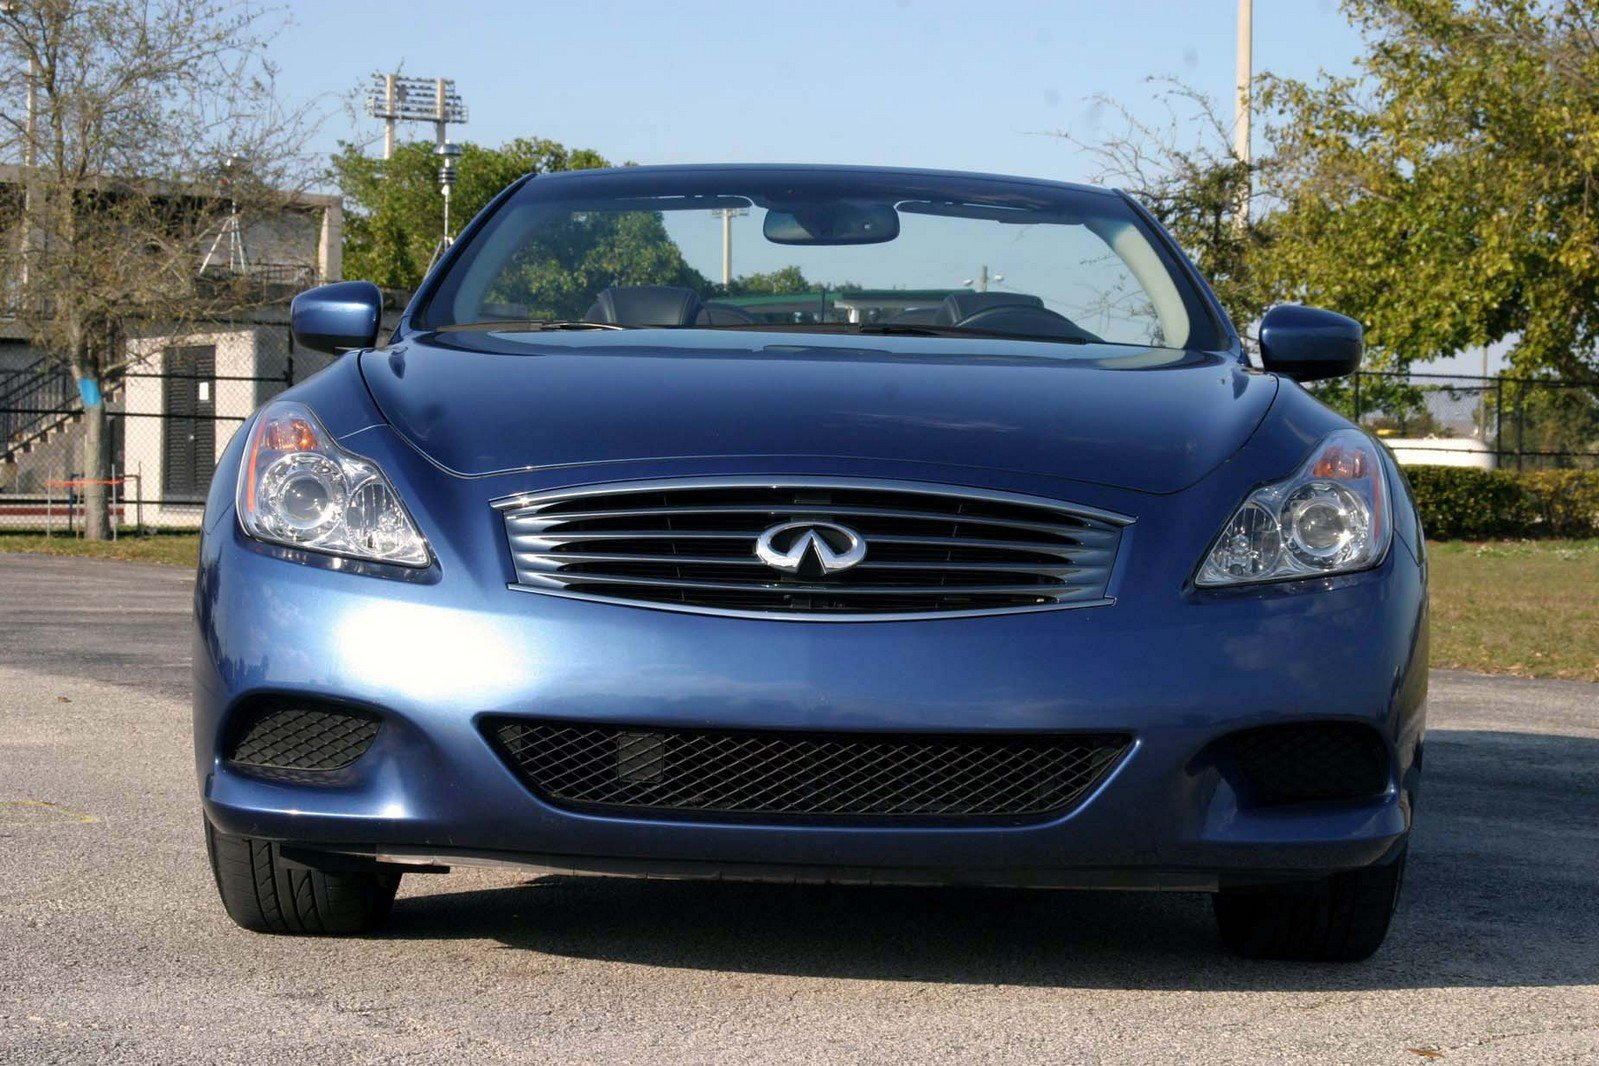 2010 infiniti g37s picture 354970 car review top speed. Black Bedroom Furniture Sets. Home Design Ideas